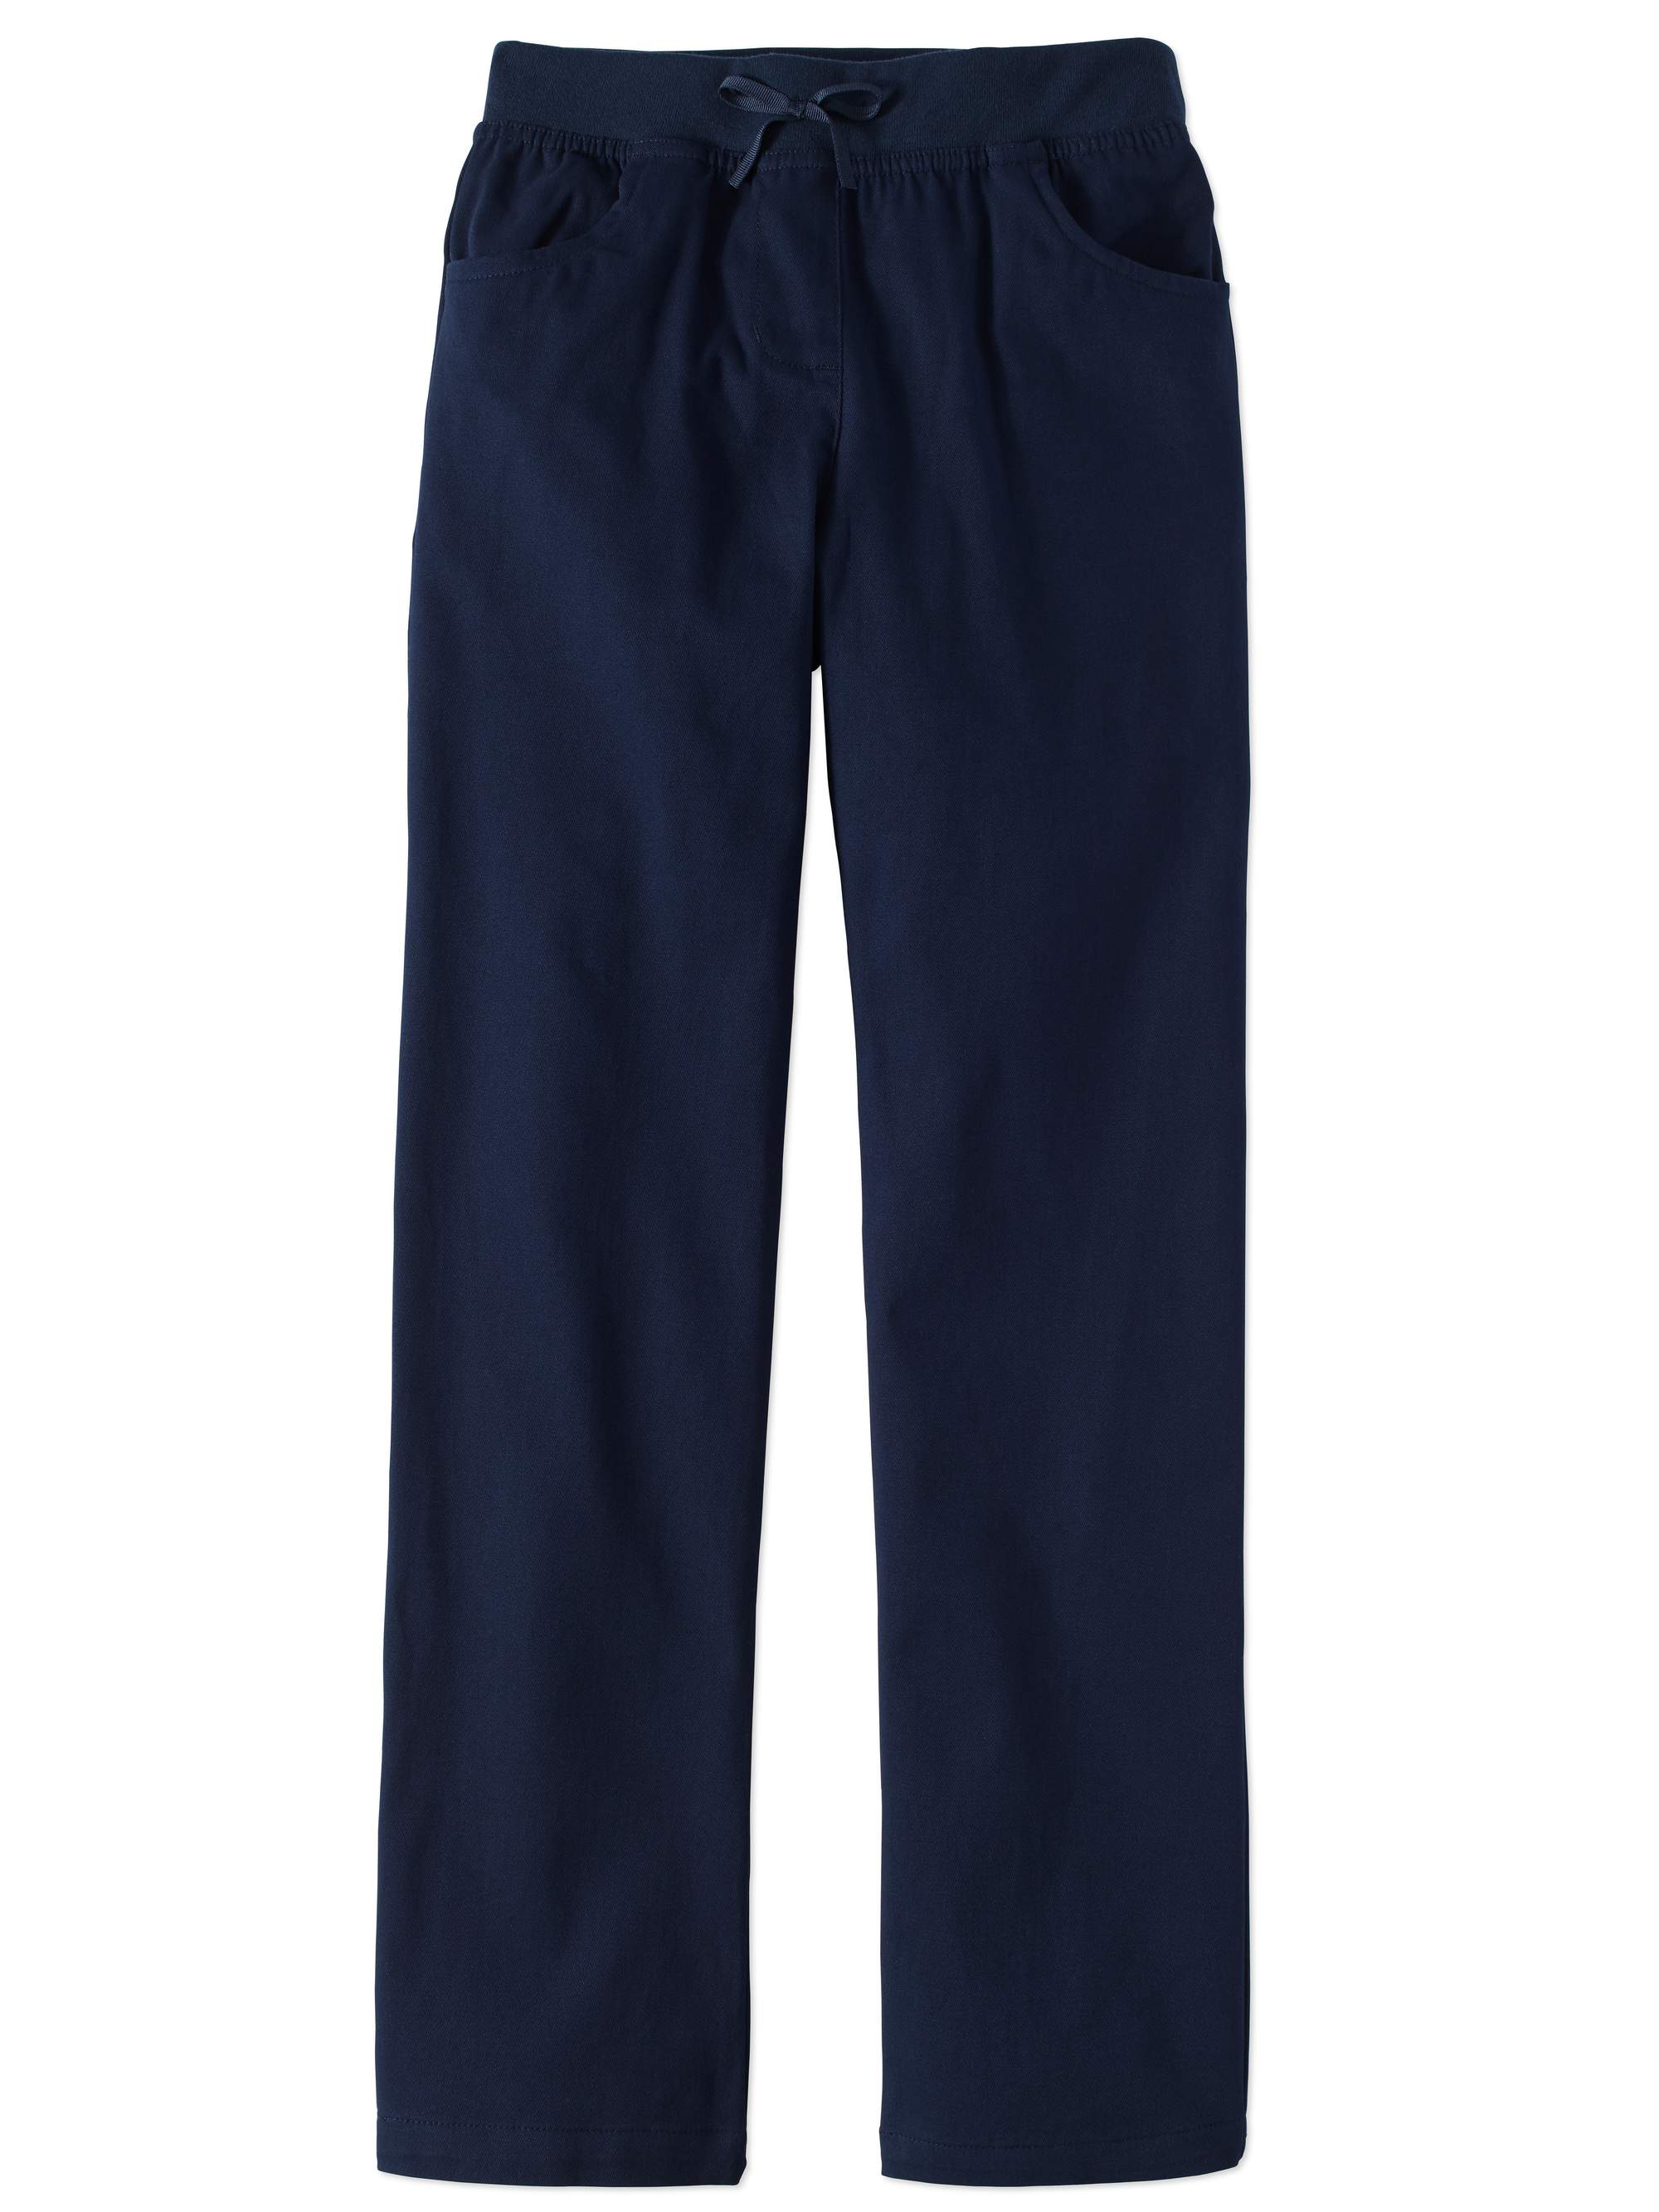 Girls School Uniform Pull-On Pants